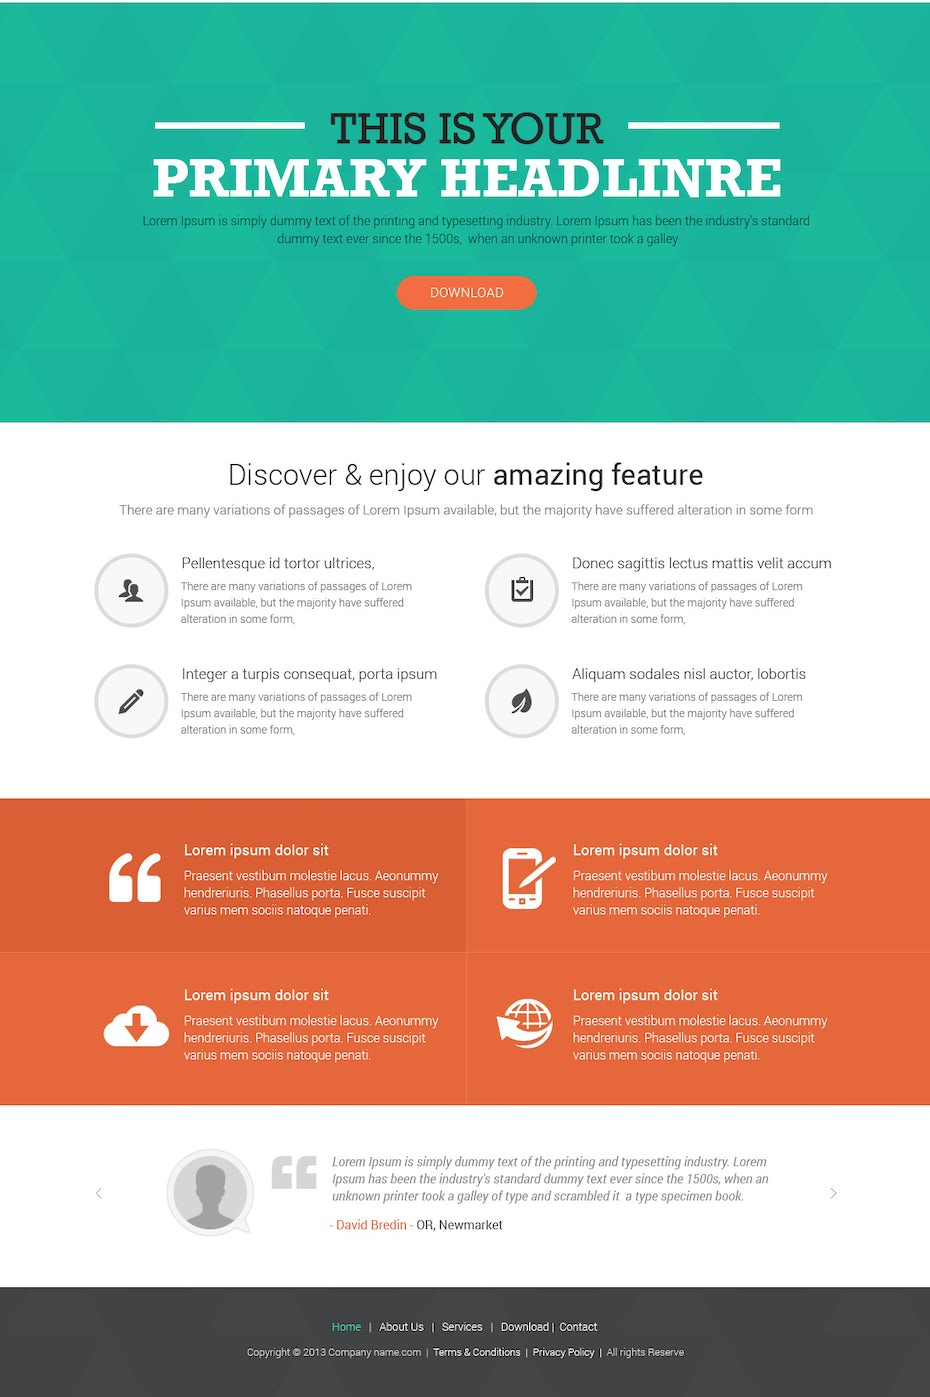 99designs template landing page